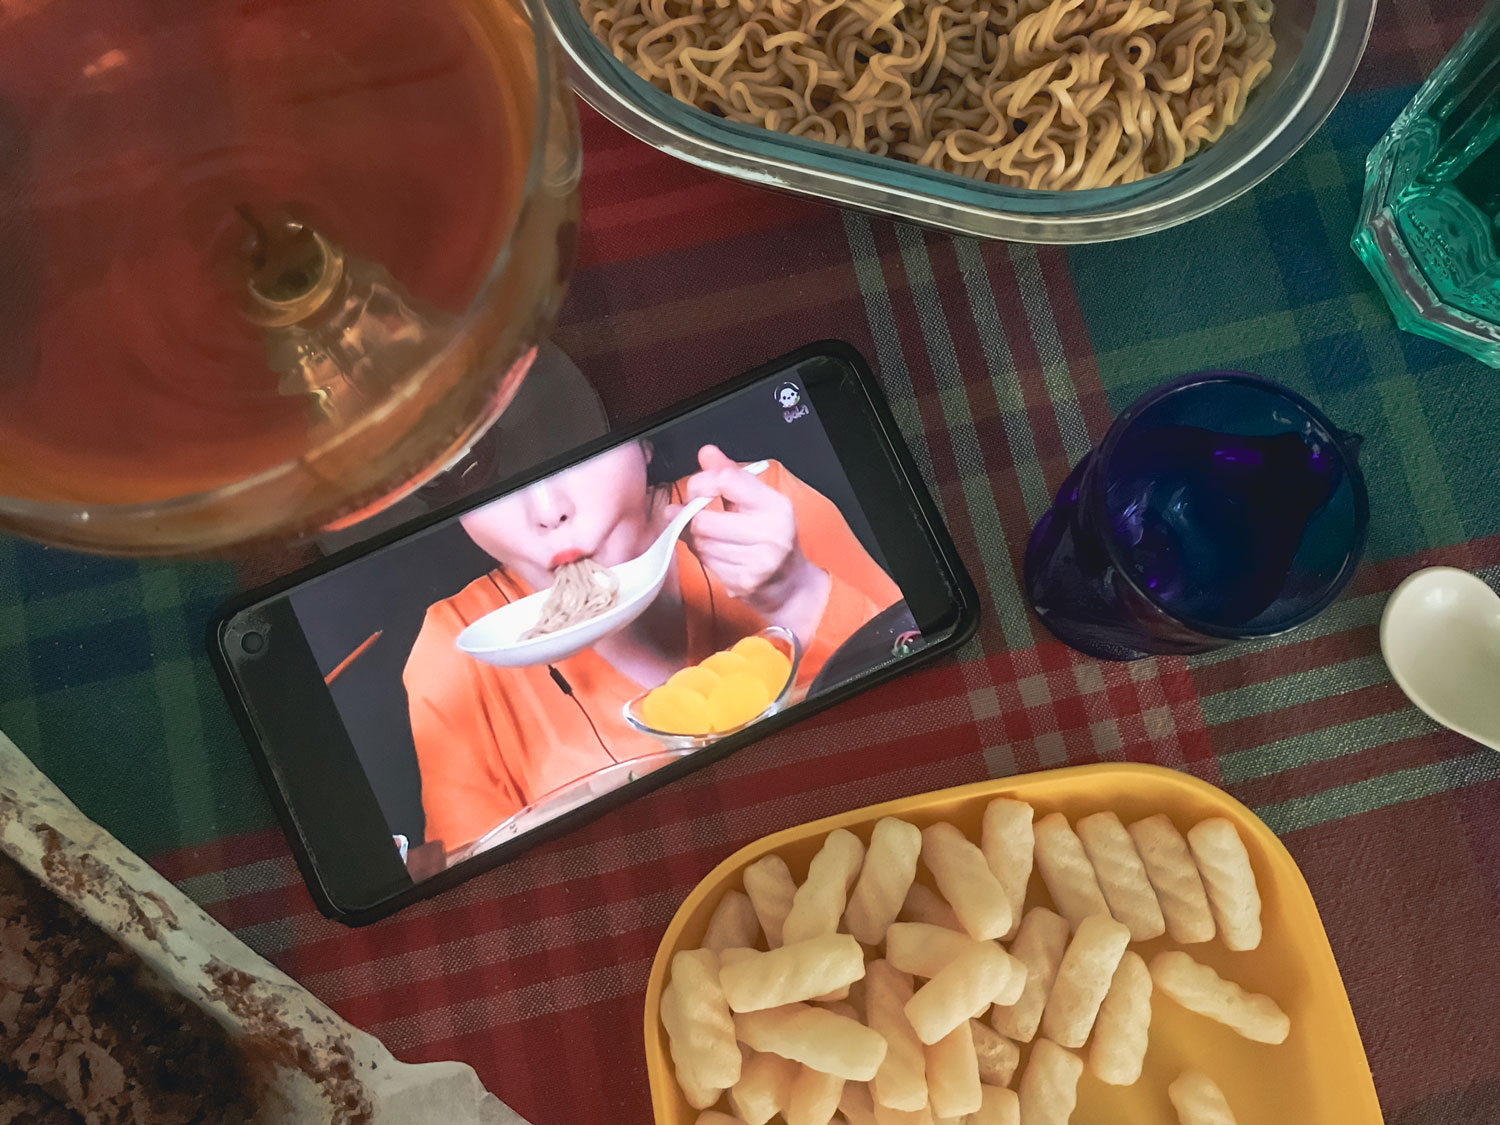 An open smart phone featuring a person eating.